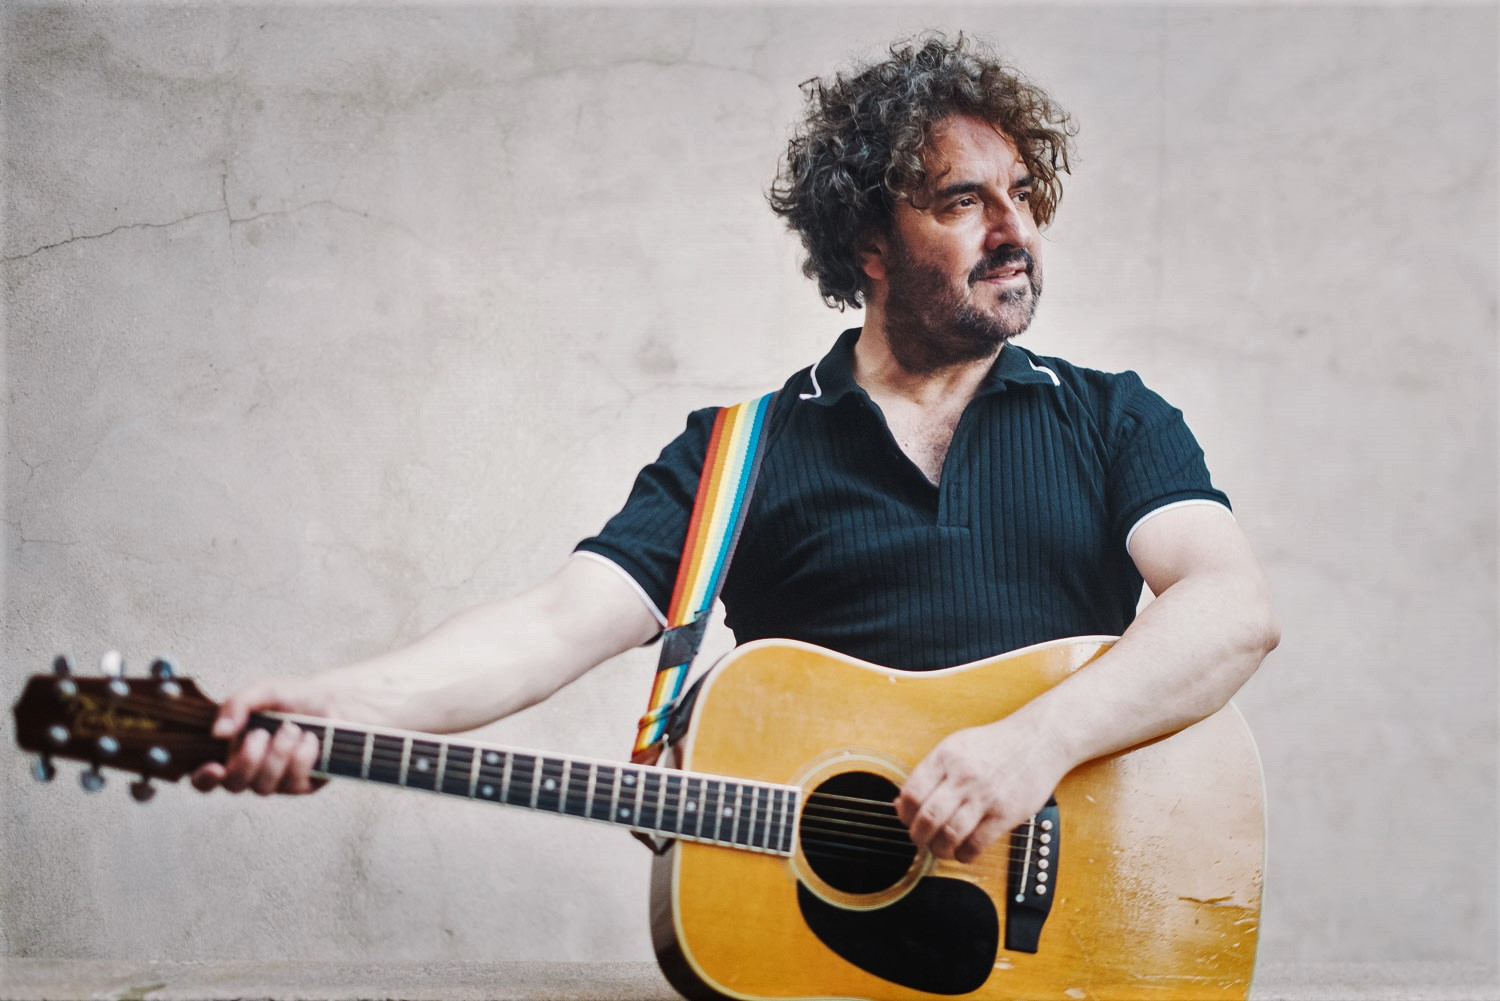 Ian prowse live at The Prince Albert Stroud